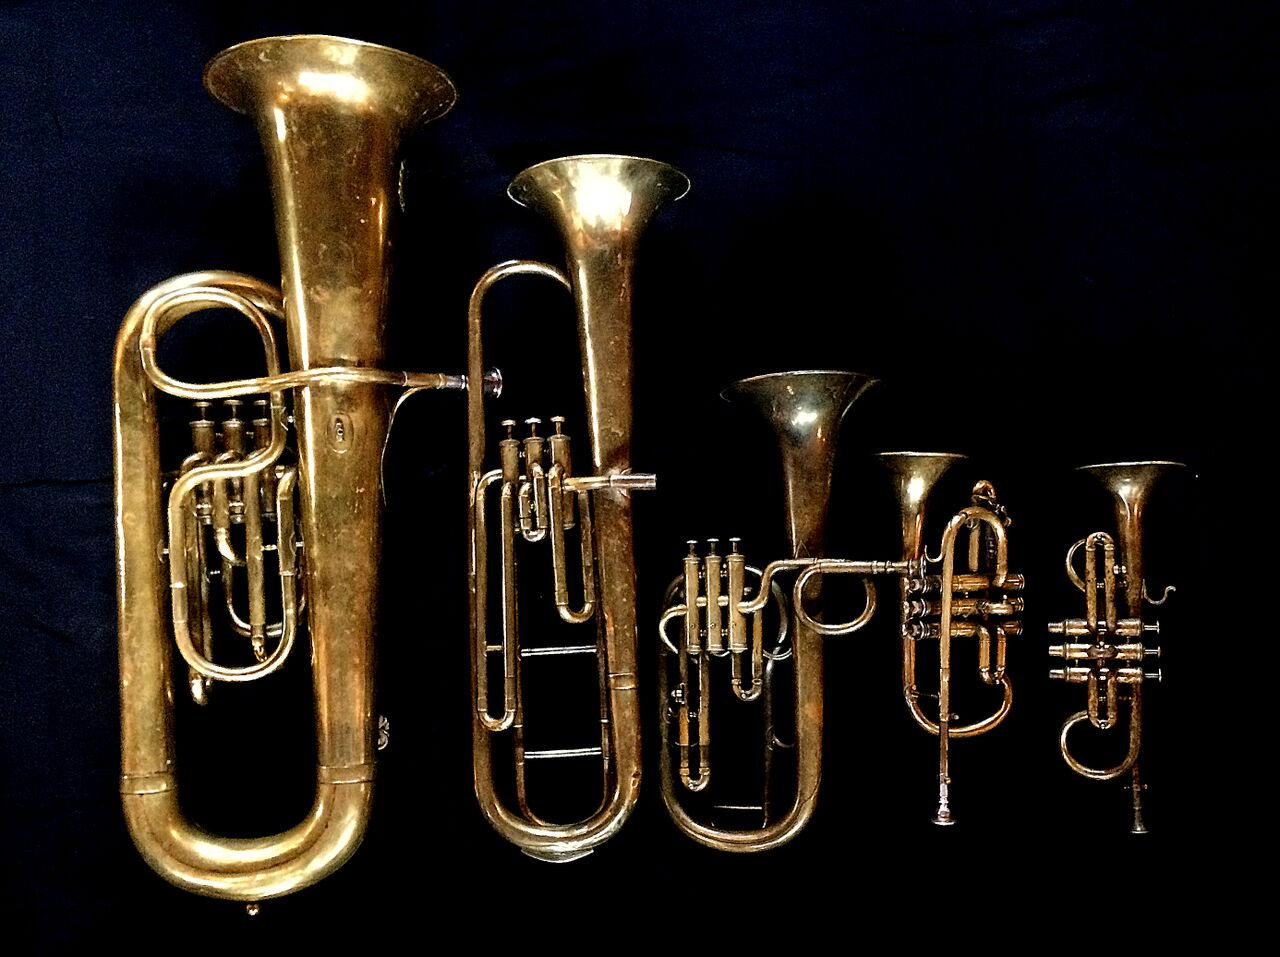 Left to Right:  Contrabass saxhorn in E-flat   by E. Daniel (7167, Marseille, c. 1850),   Baritone saxhorn in C/B flat   by Couturier (Lyon, c. 1865),   Tenor saxhorn in F/E flat/D   by Antoine Courtois (Paris, c. 1855), sold by Arthur Chappell (London)  ,   Cornet in E-flat   by Couesnon   (94 Rue D'angouleme Exposition Universelle De Paris 1900),   Cornet in E-flat     by  Henry Distin (Gt. Newport Street, London, c. 1851-1868),.